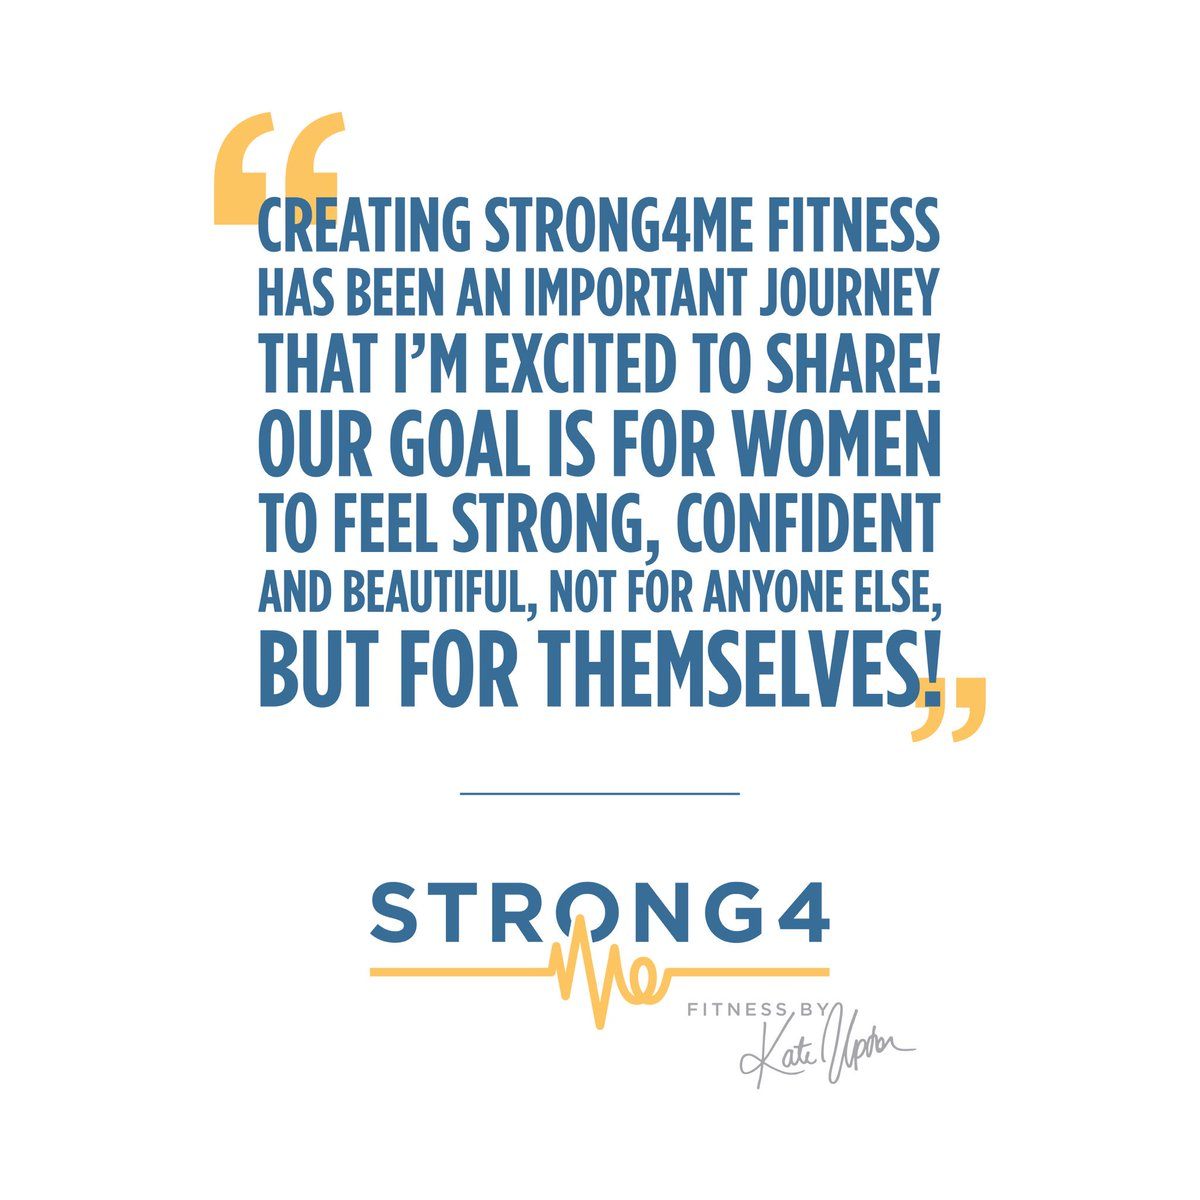 I stopped working out to fit in a certain dress size and hit certain measurements. I wanted to feel strong, confident and healthy for myself! #Strong4ME @Strong4MeFit